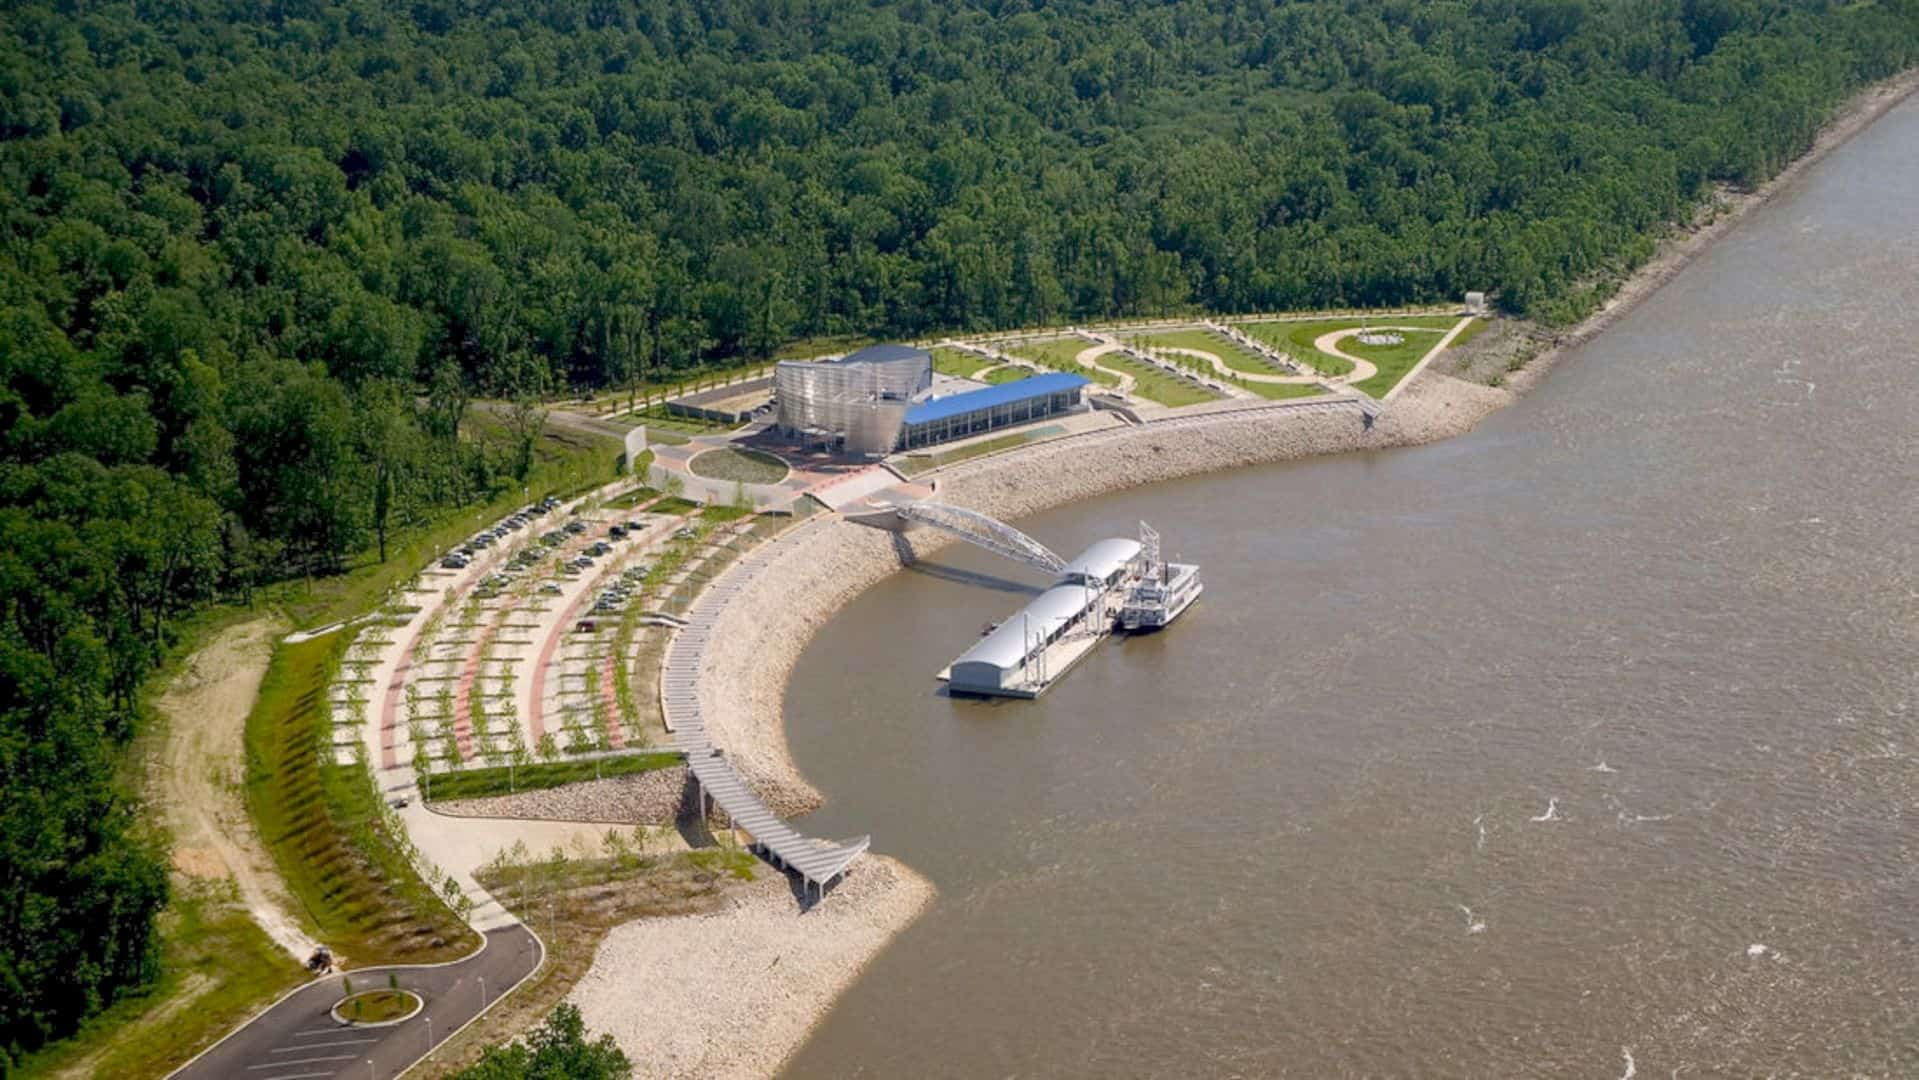 Tunica River Park: A Large Park near the Mississippi River with A